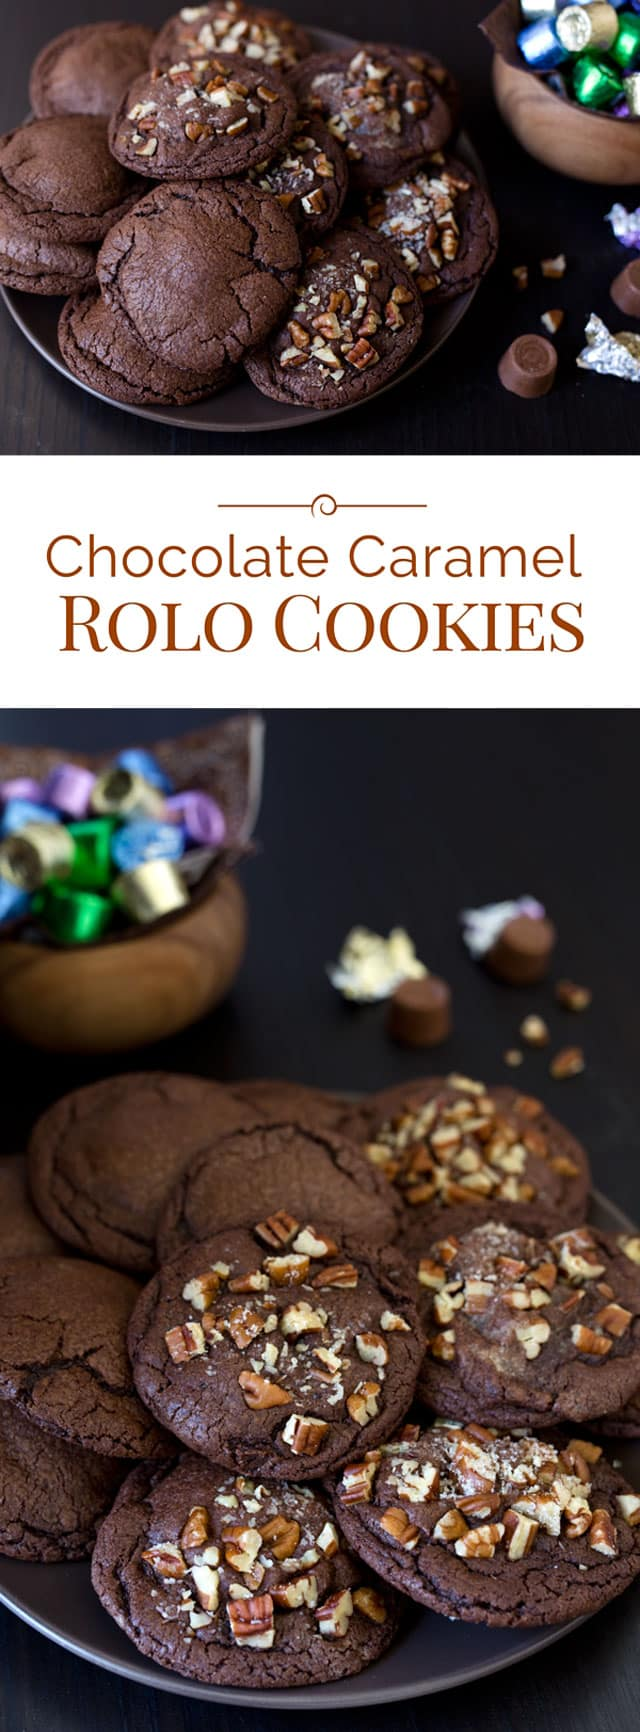 Rolo-Cookies-Collage-Barbara-Bakes